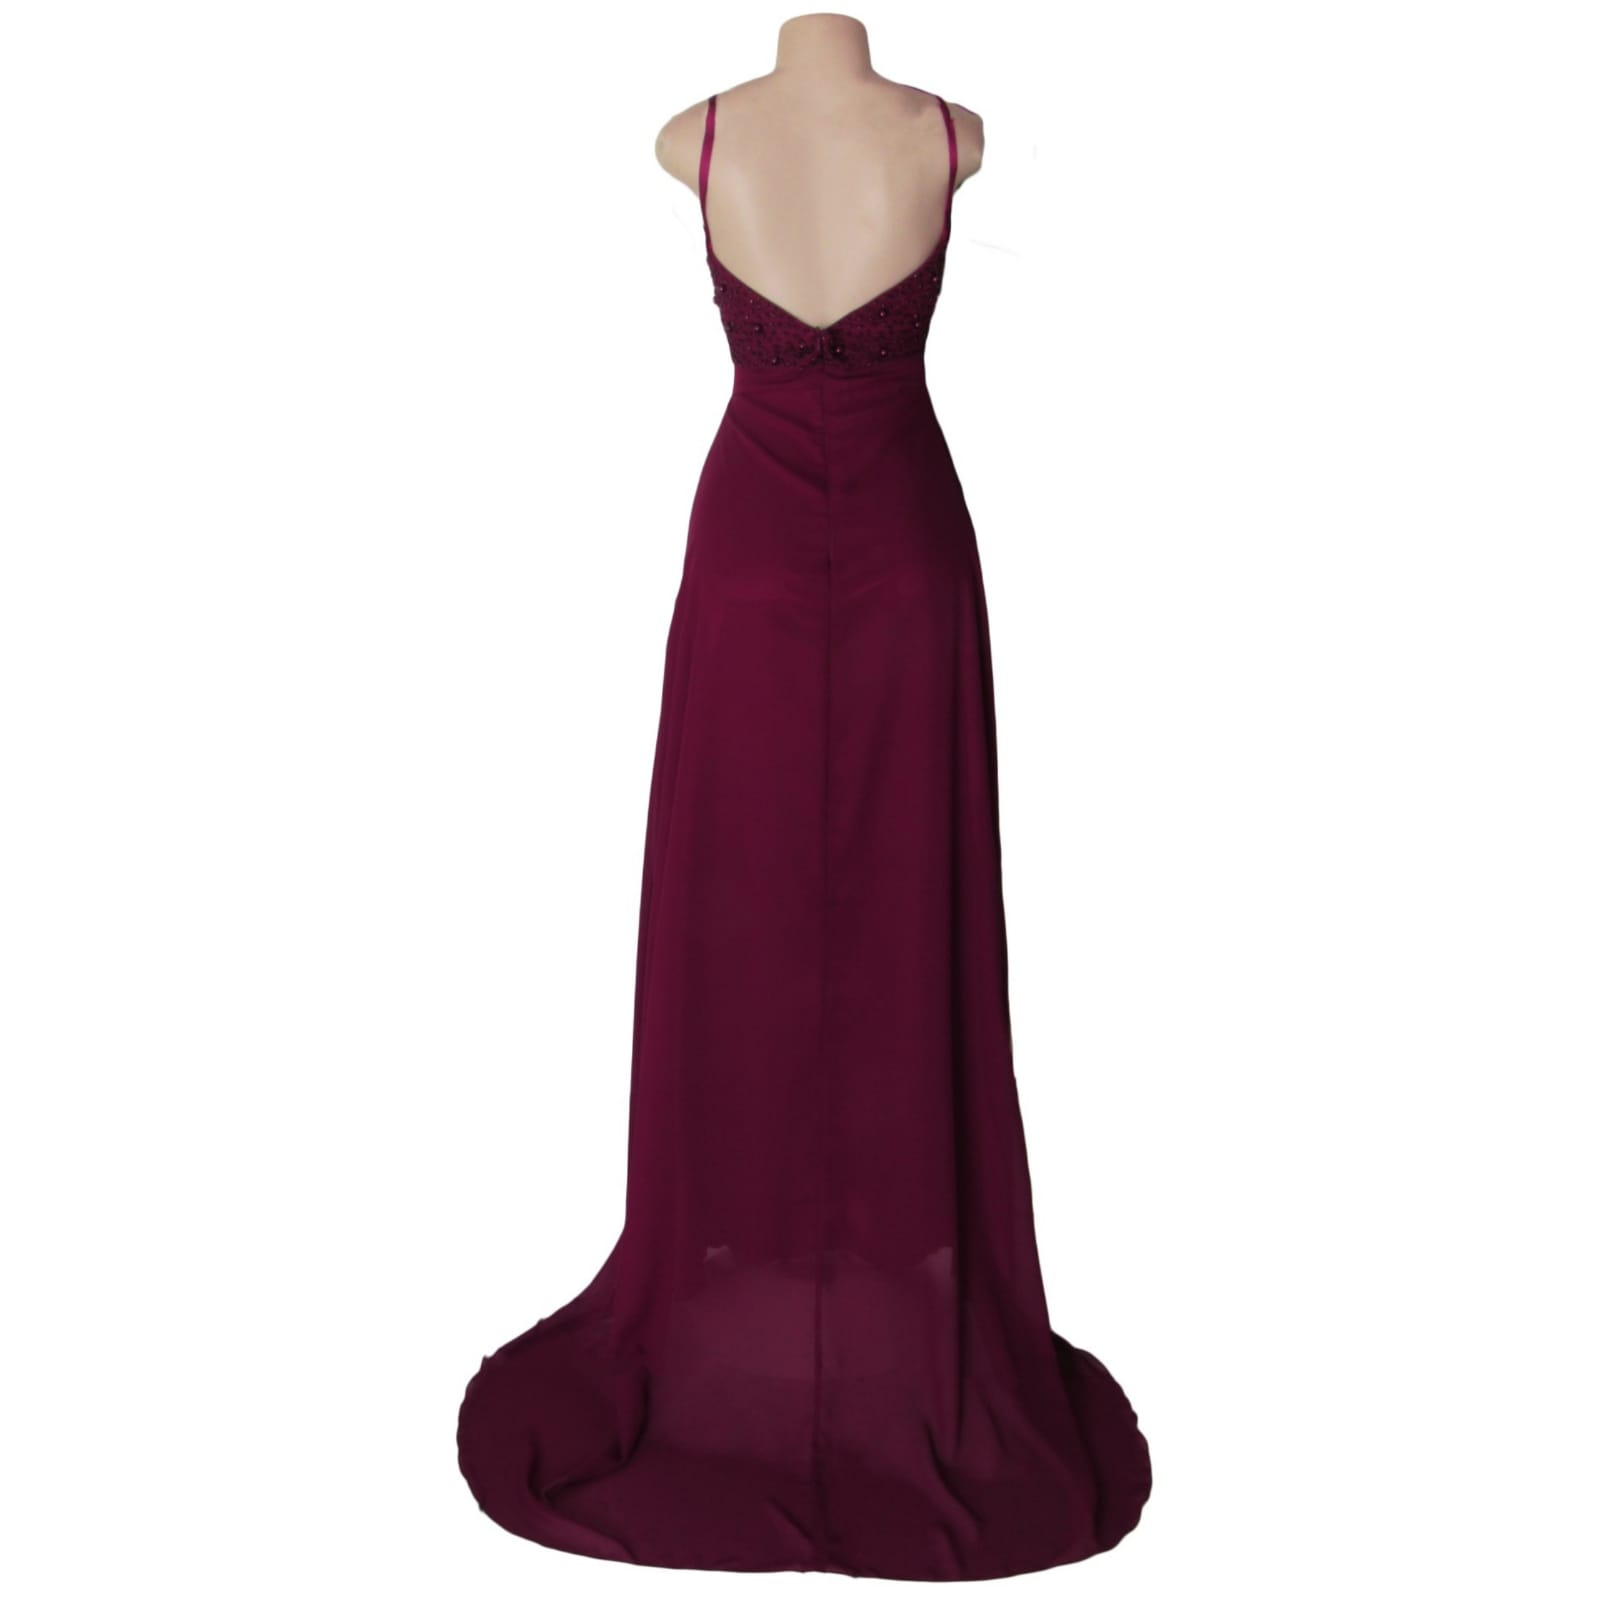 Burgundy plunging neckline long prom dress 5 burgundy plunging neckline long matric dance dress with a slit and a train. With a beaded bodice.